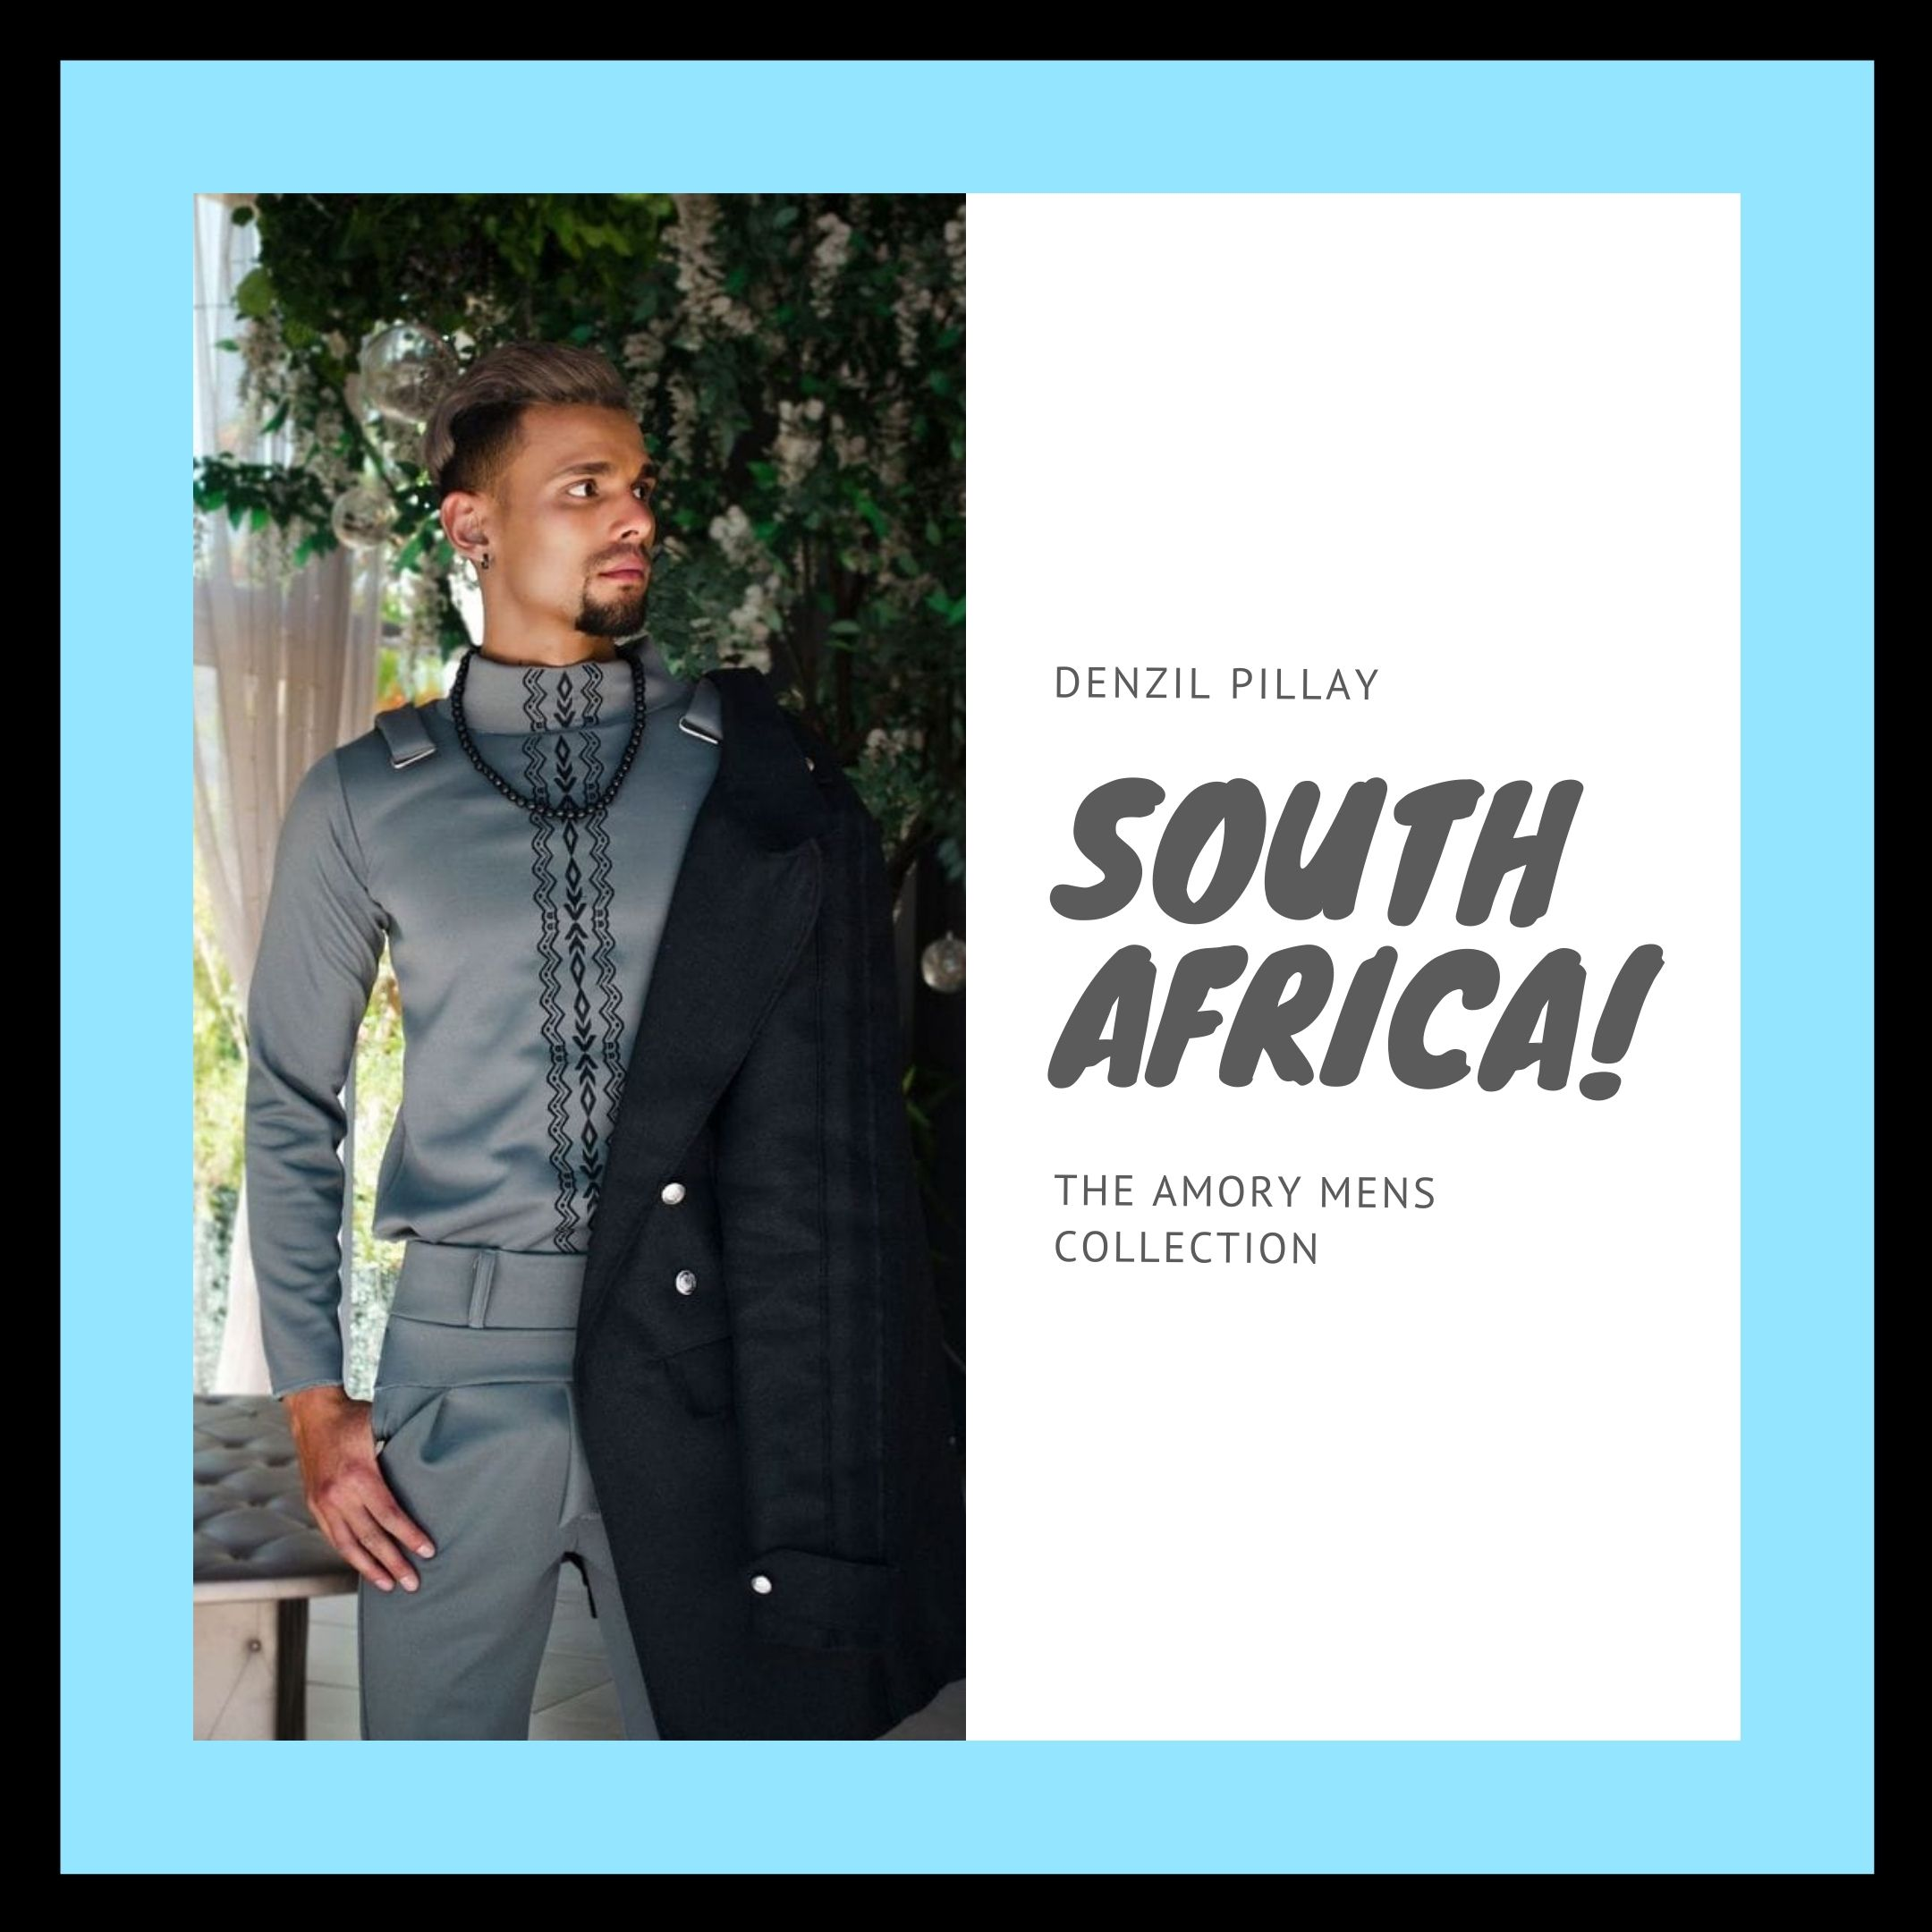 THE AMORY MENS COLLECTION - DENZIL PILLAY - South Africa